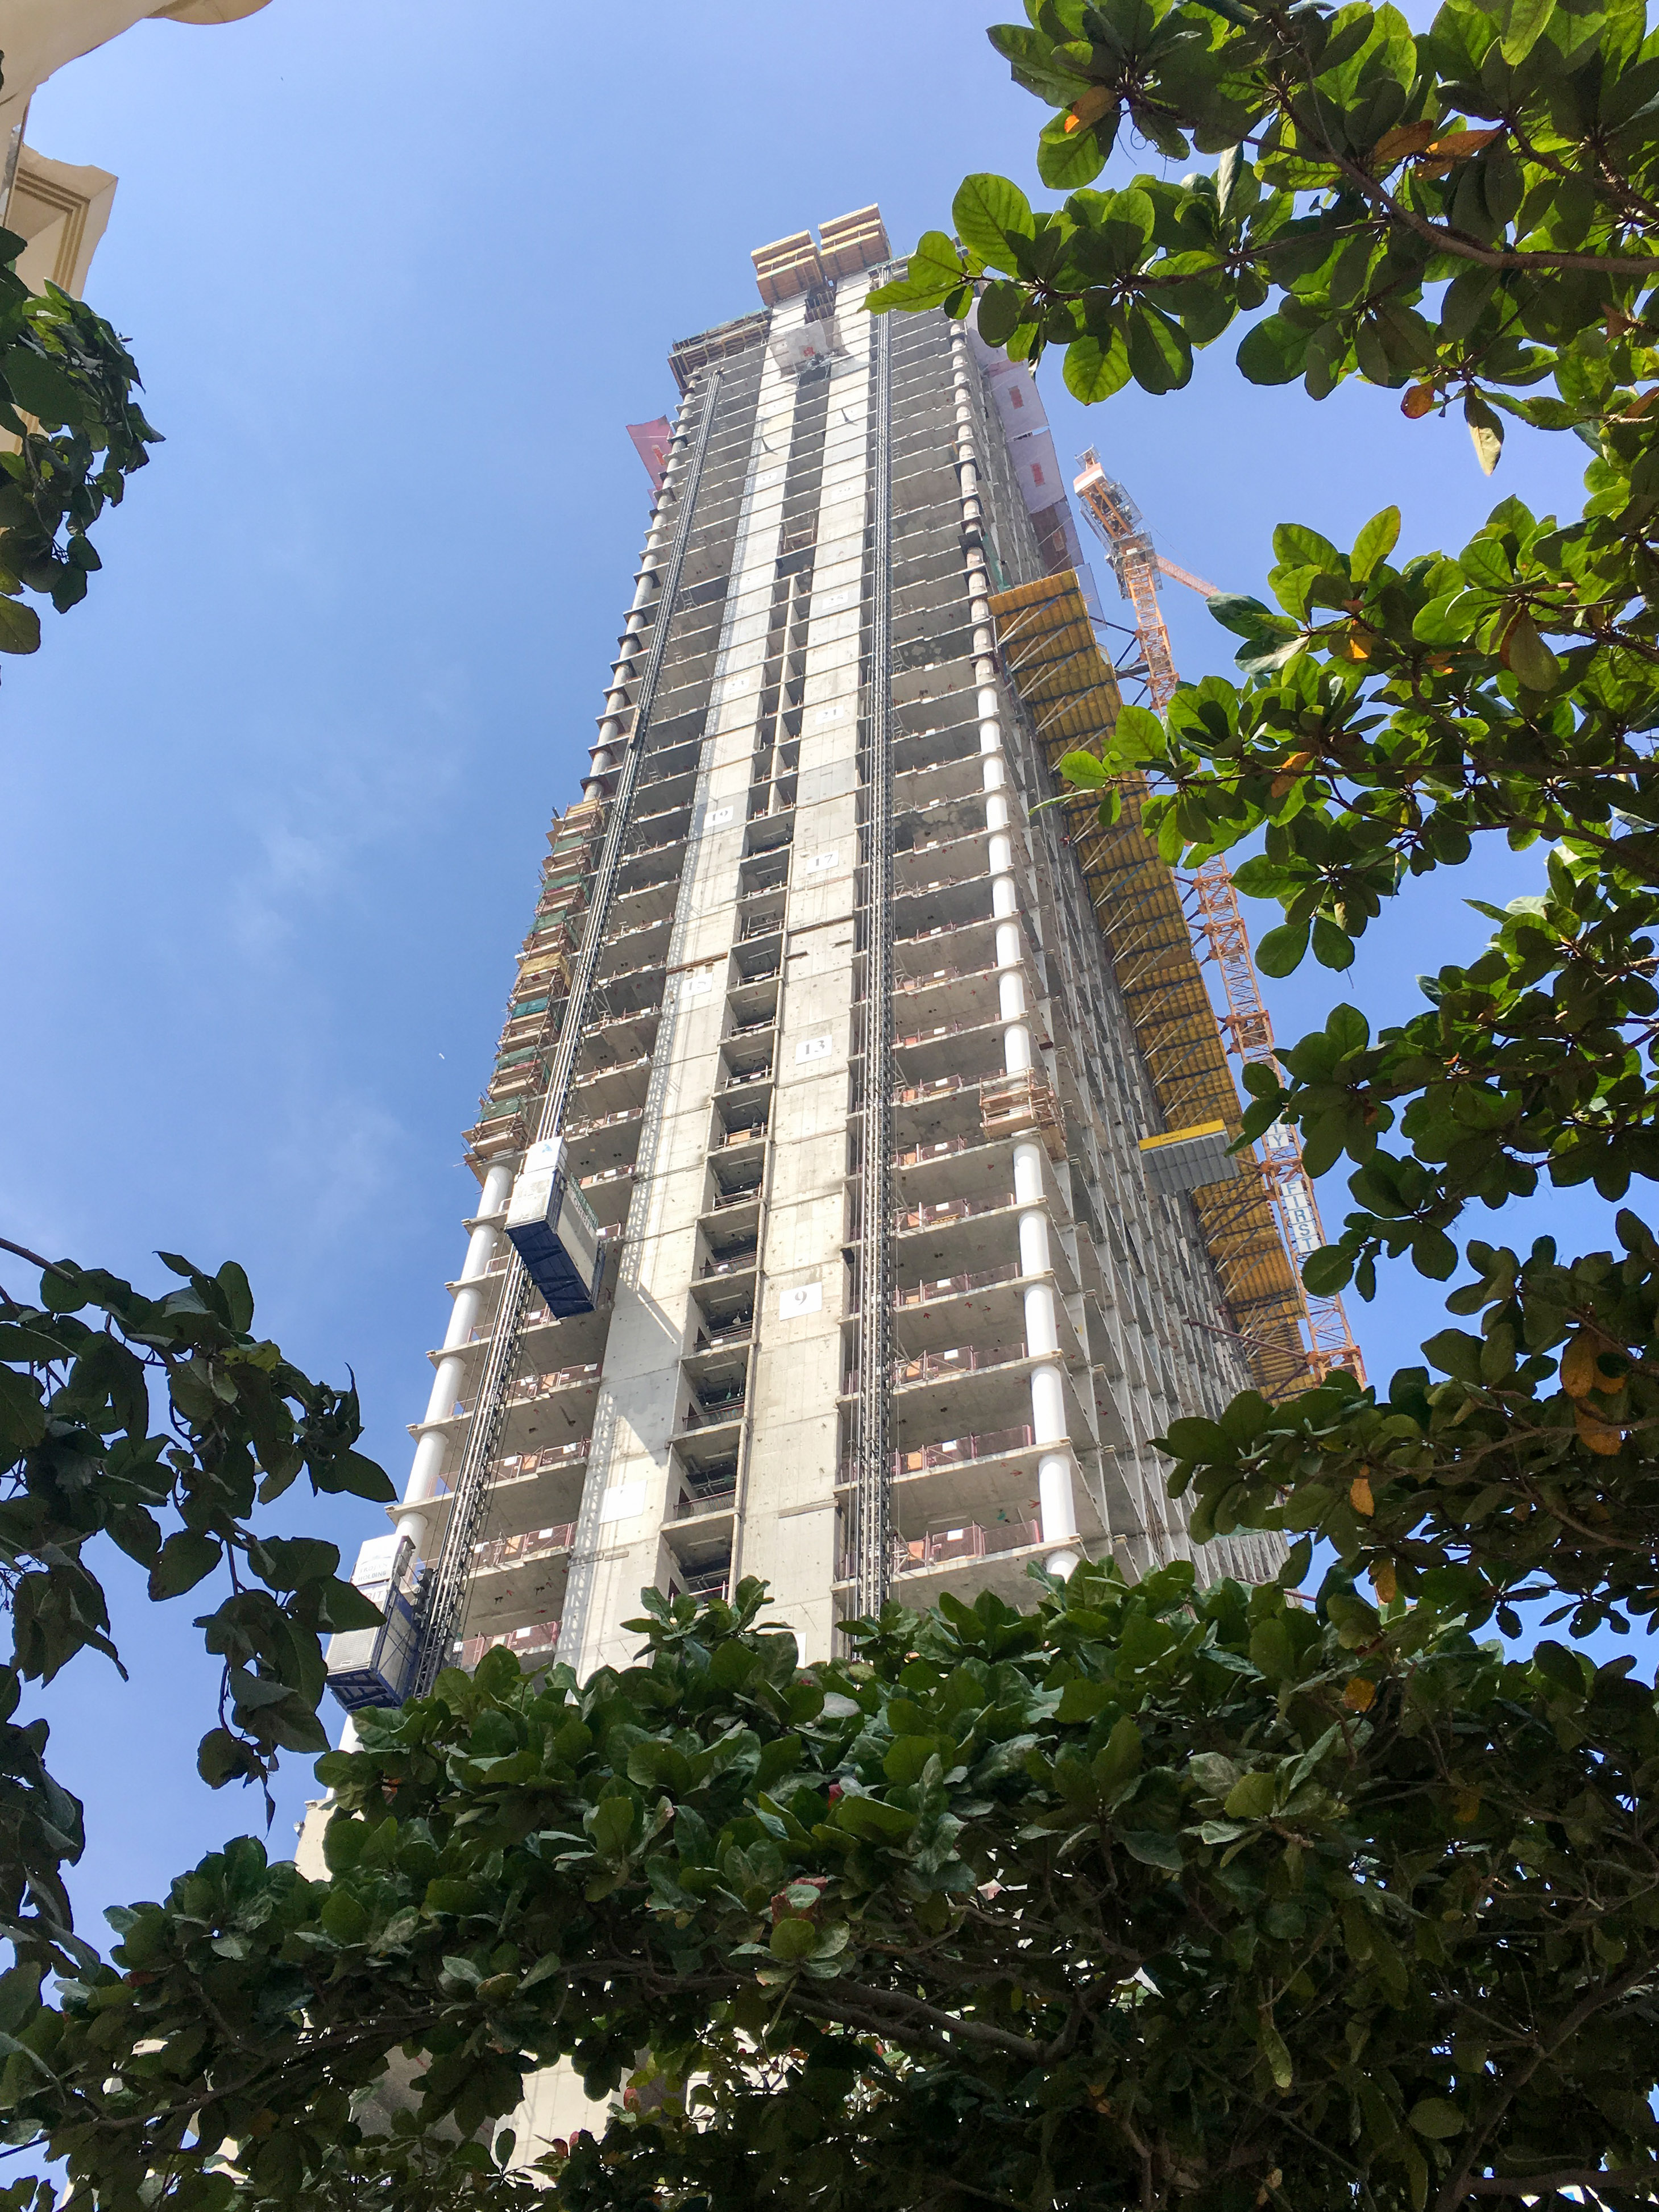 Nakheel Palm Tower under construction